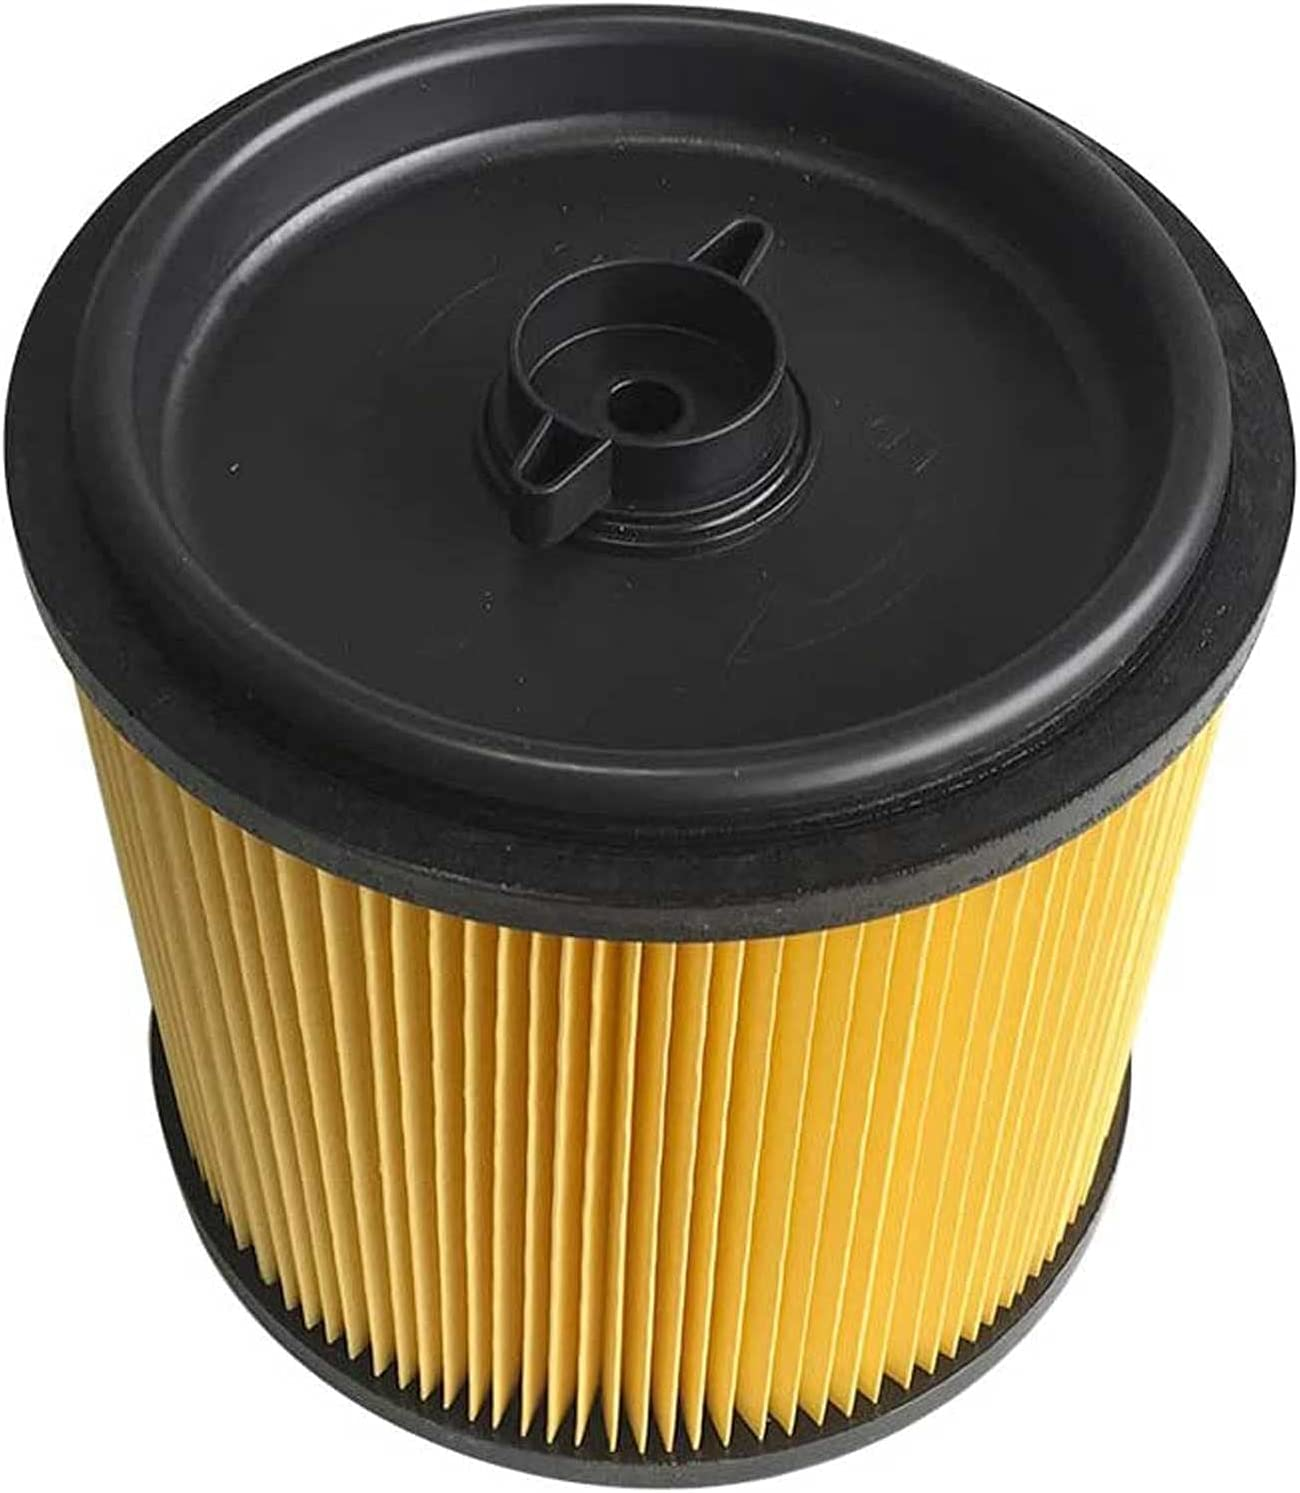 Yonice Replacement Cartridge Filter Compatible Hart Max 81% OFF Indefinitely for Standard